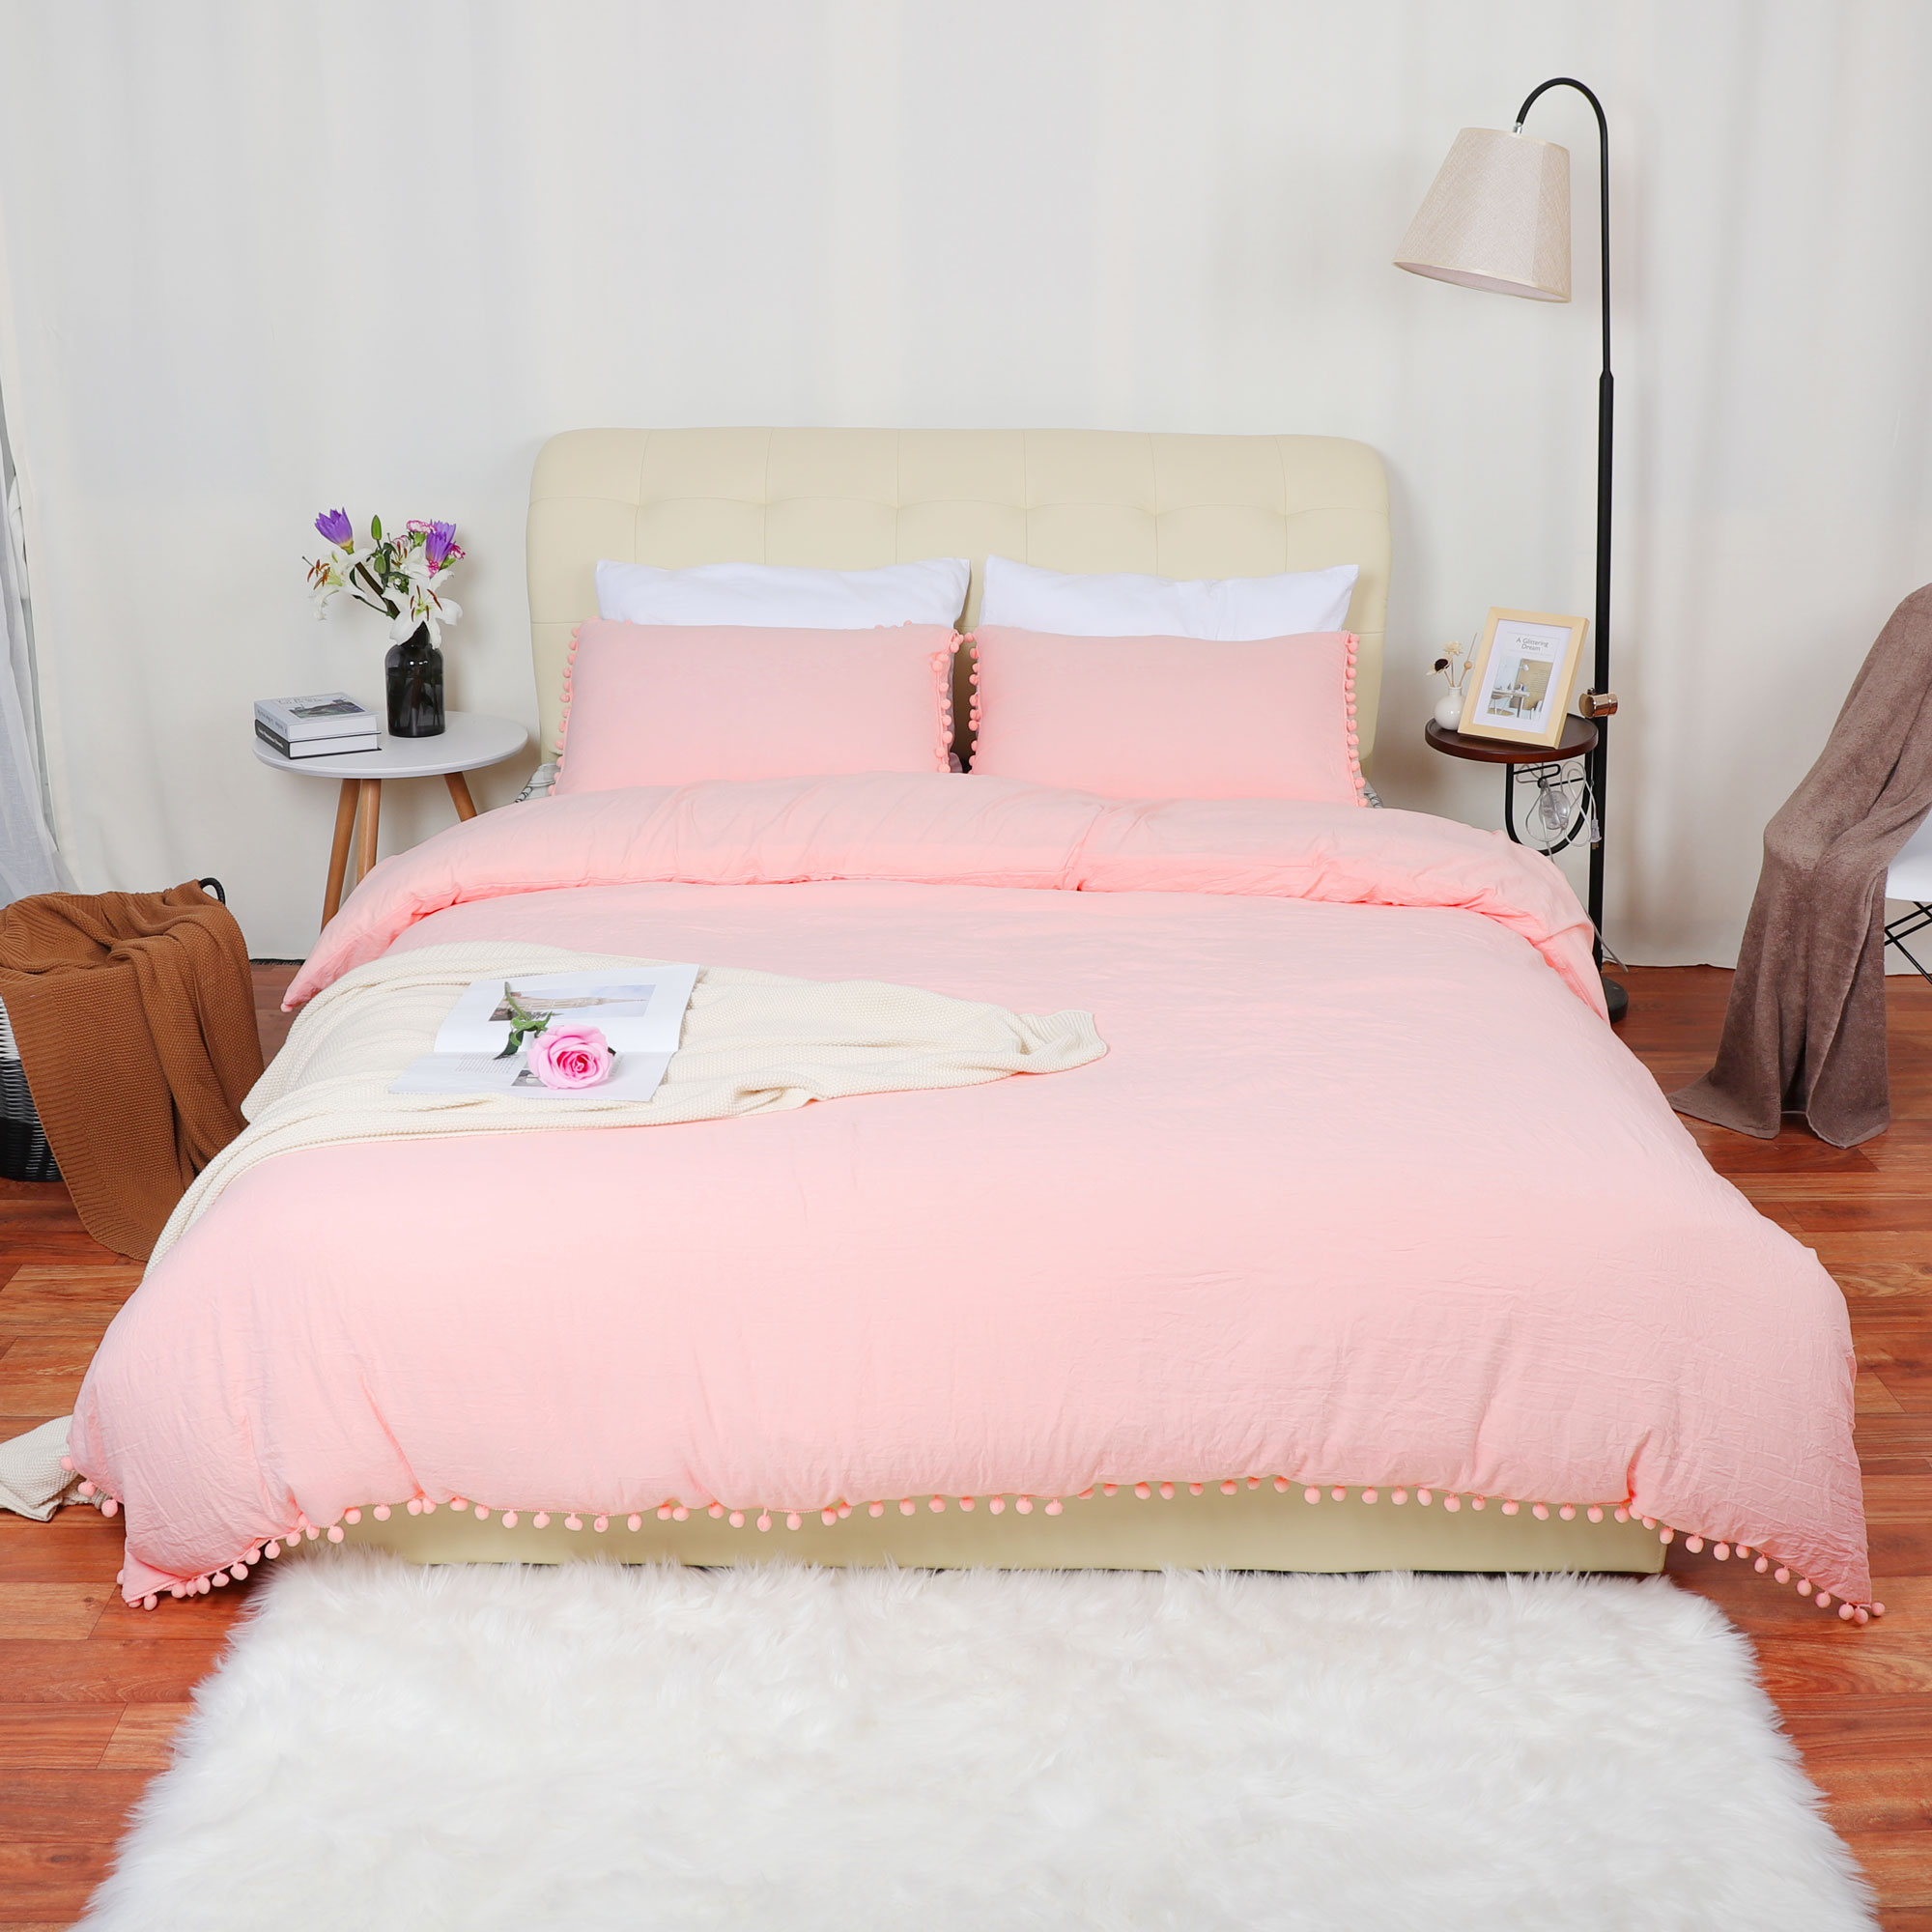 Wash Cotton Bedding Duvet Cover Pillowcase w Pompon Tassels King White